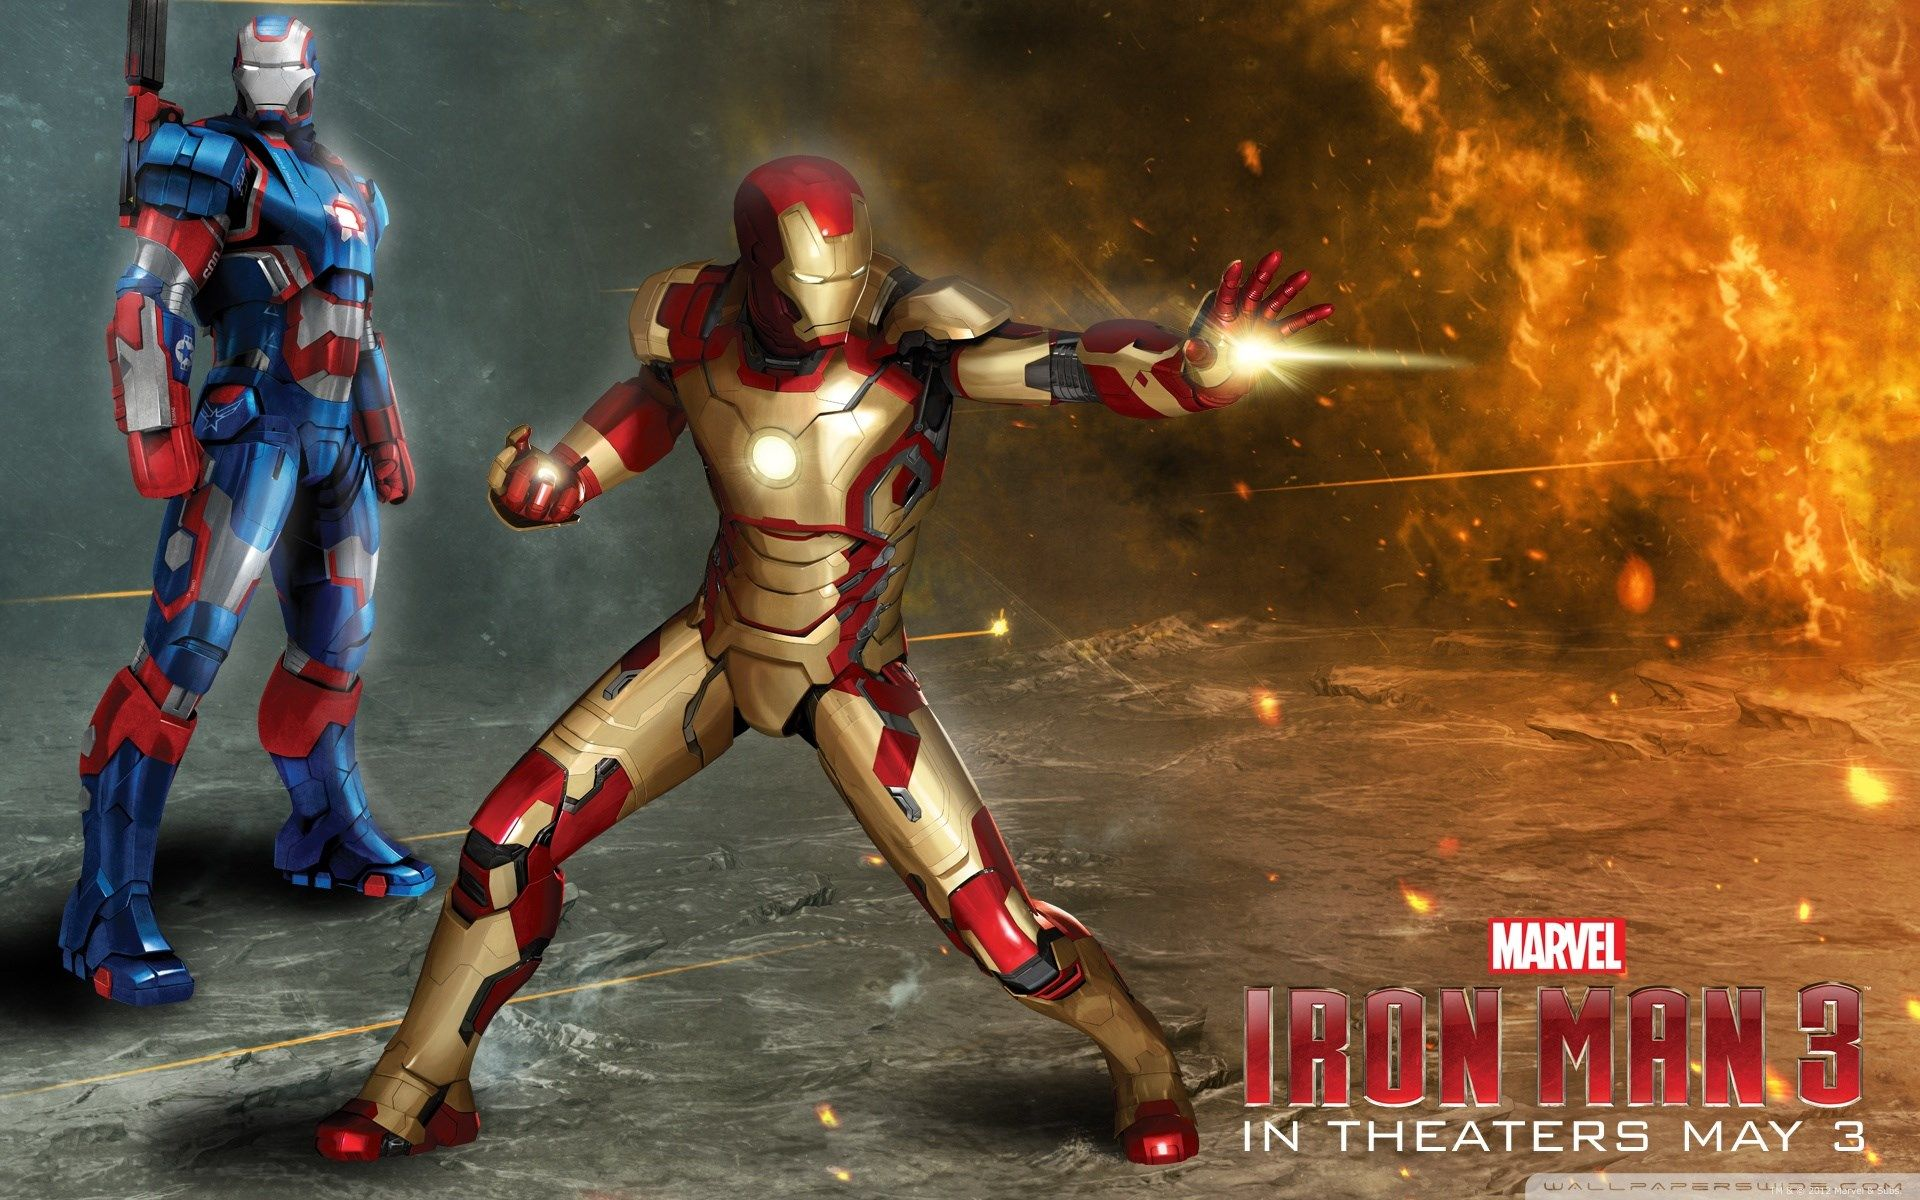 free pictures of iron man 3 Erskine WilKinson 2017 03 15